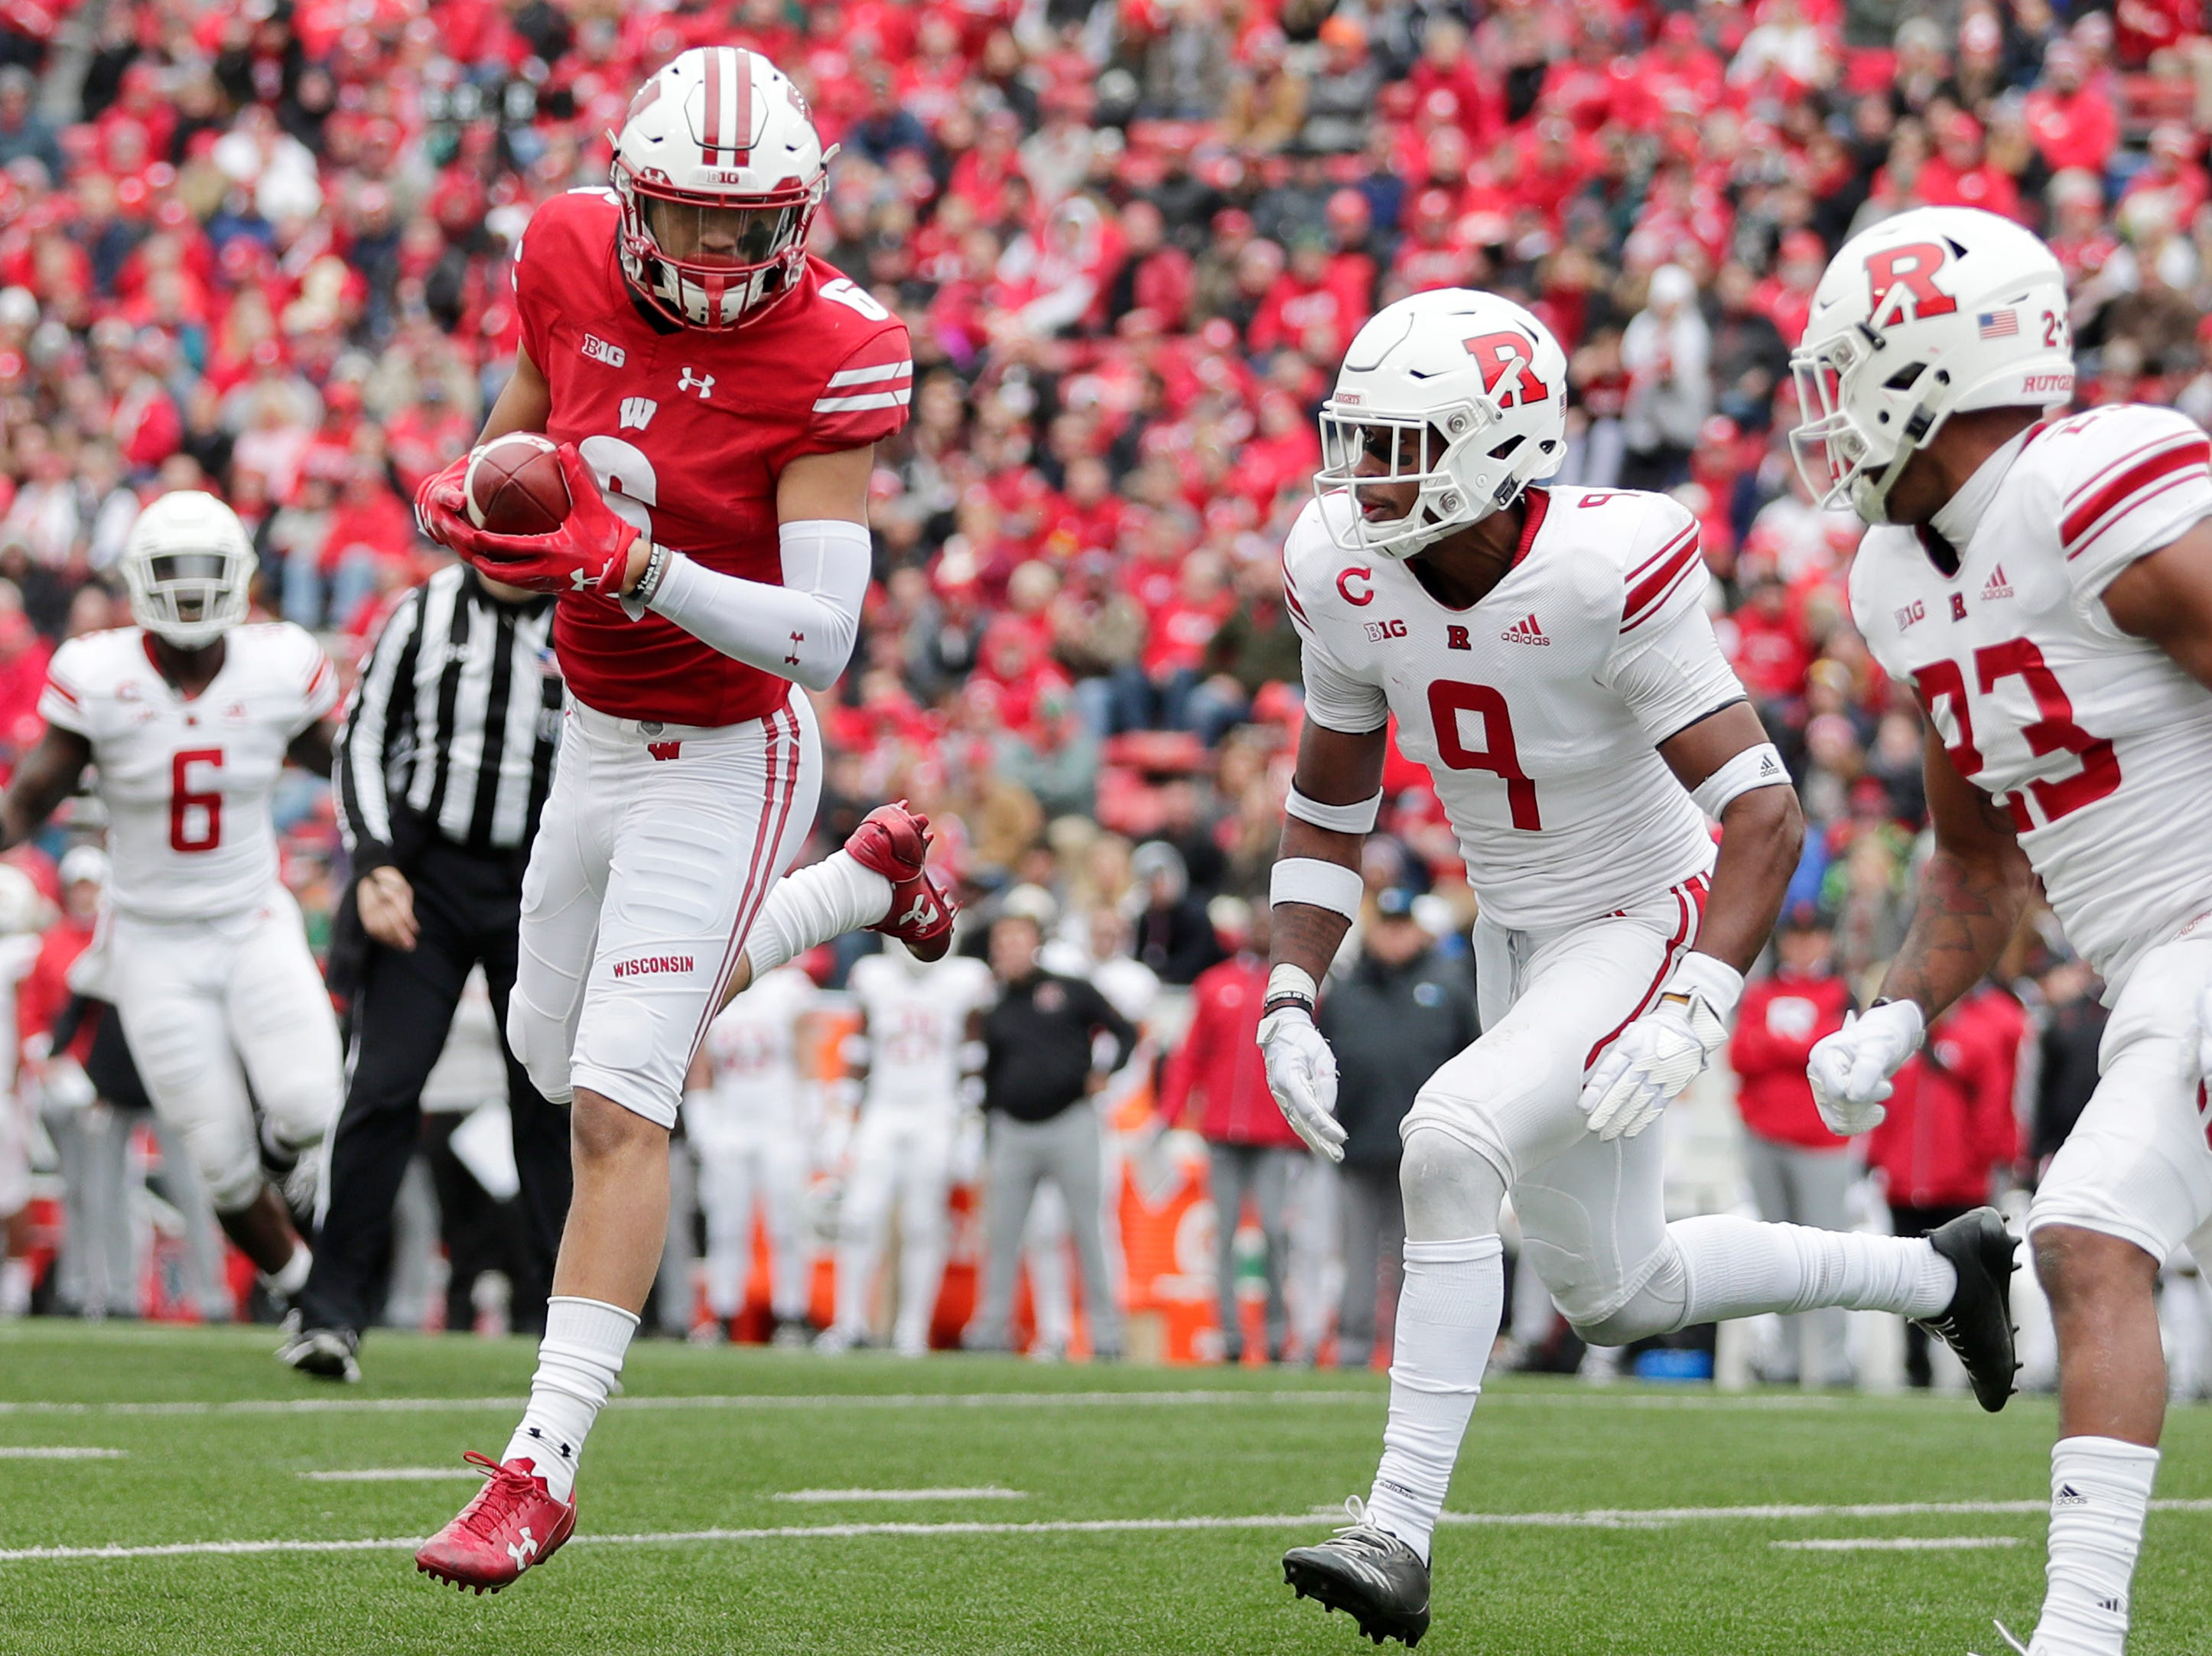 Wisconsin Badgers wide receiver Danny Davis III (6) catches a pass against the Rutgers Scarlet Knights in the fourth quarter of a Big Ten football game at Camp Randall Stadium on Saturday, November 3, 2018 in Madison, Wis.Adam Wesley/USA TODAY NETWORK-Wisconsin